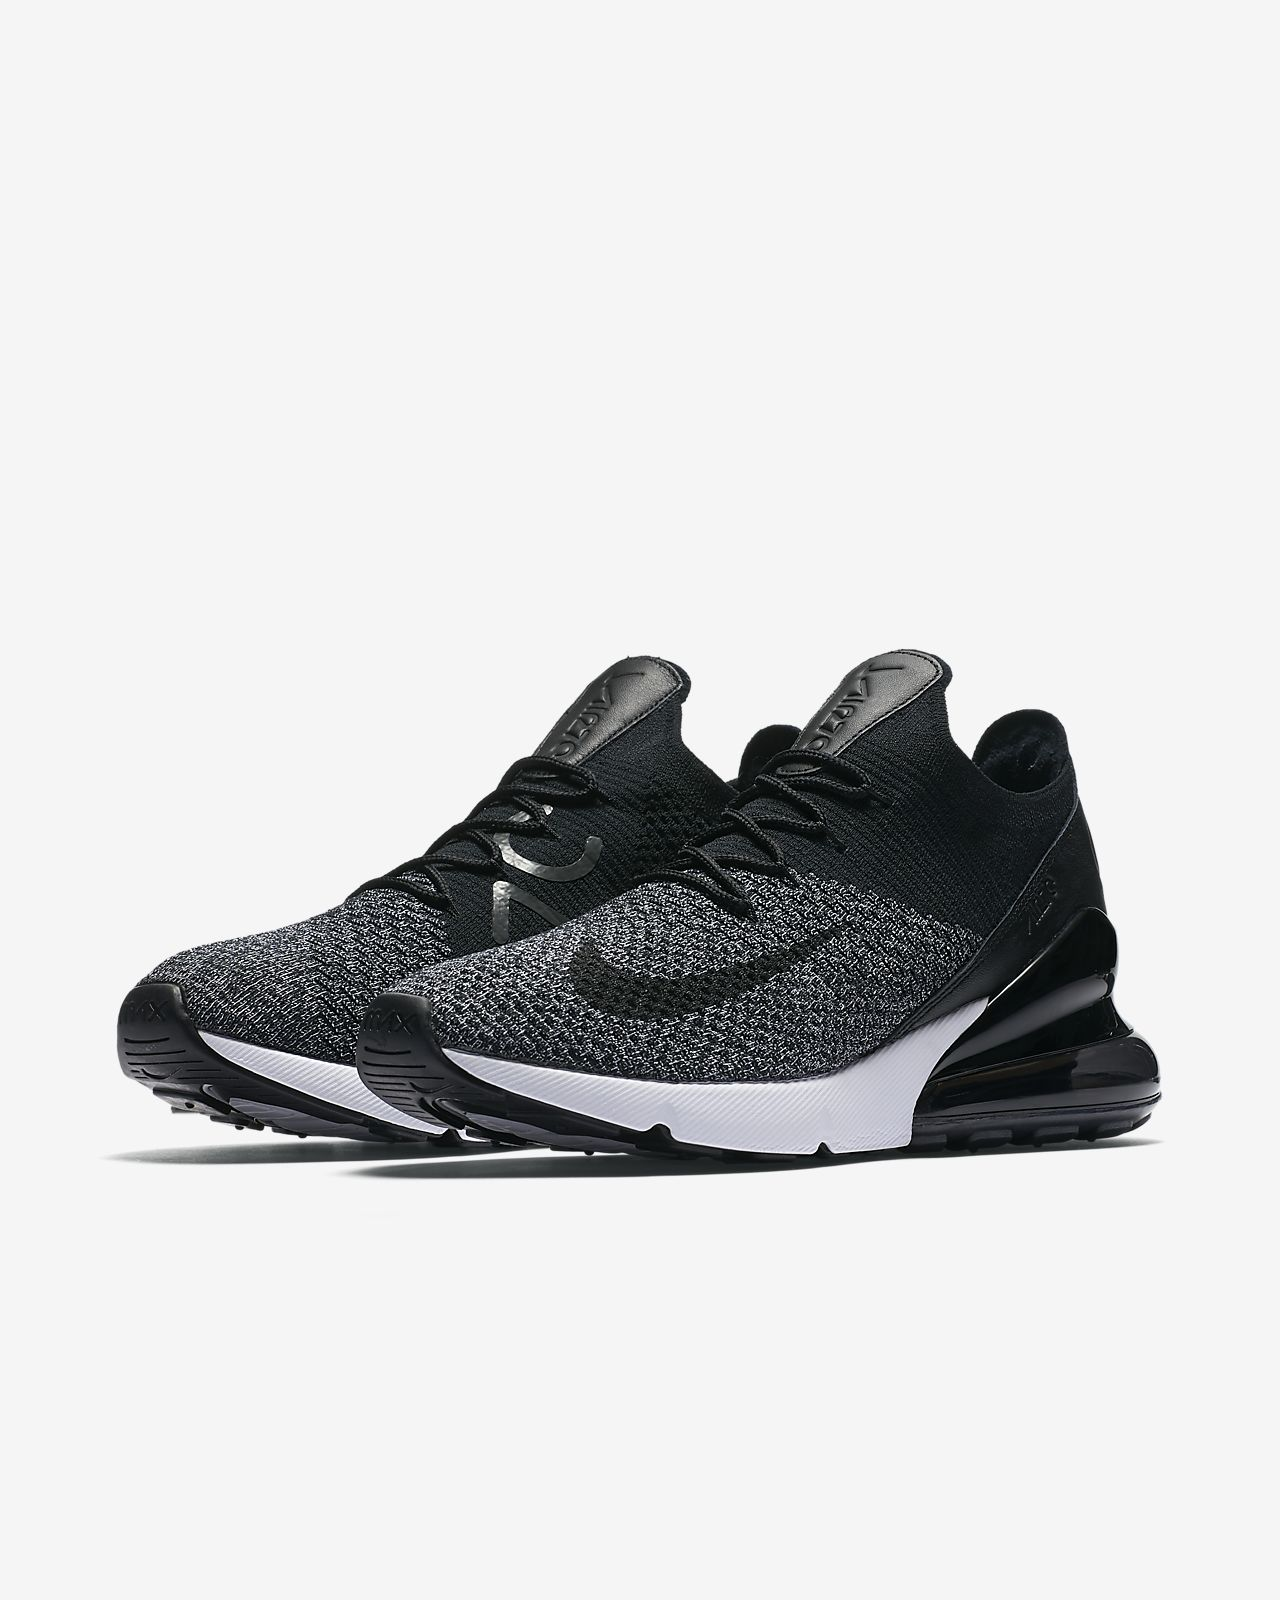 Air Max Flyknit Moderne - Chaussures - Bas-tops Et Baskets Nike OBDO4QkuX7